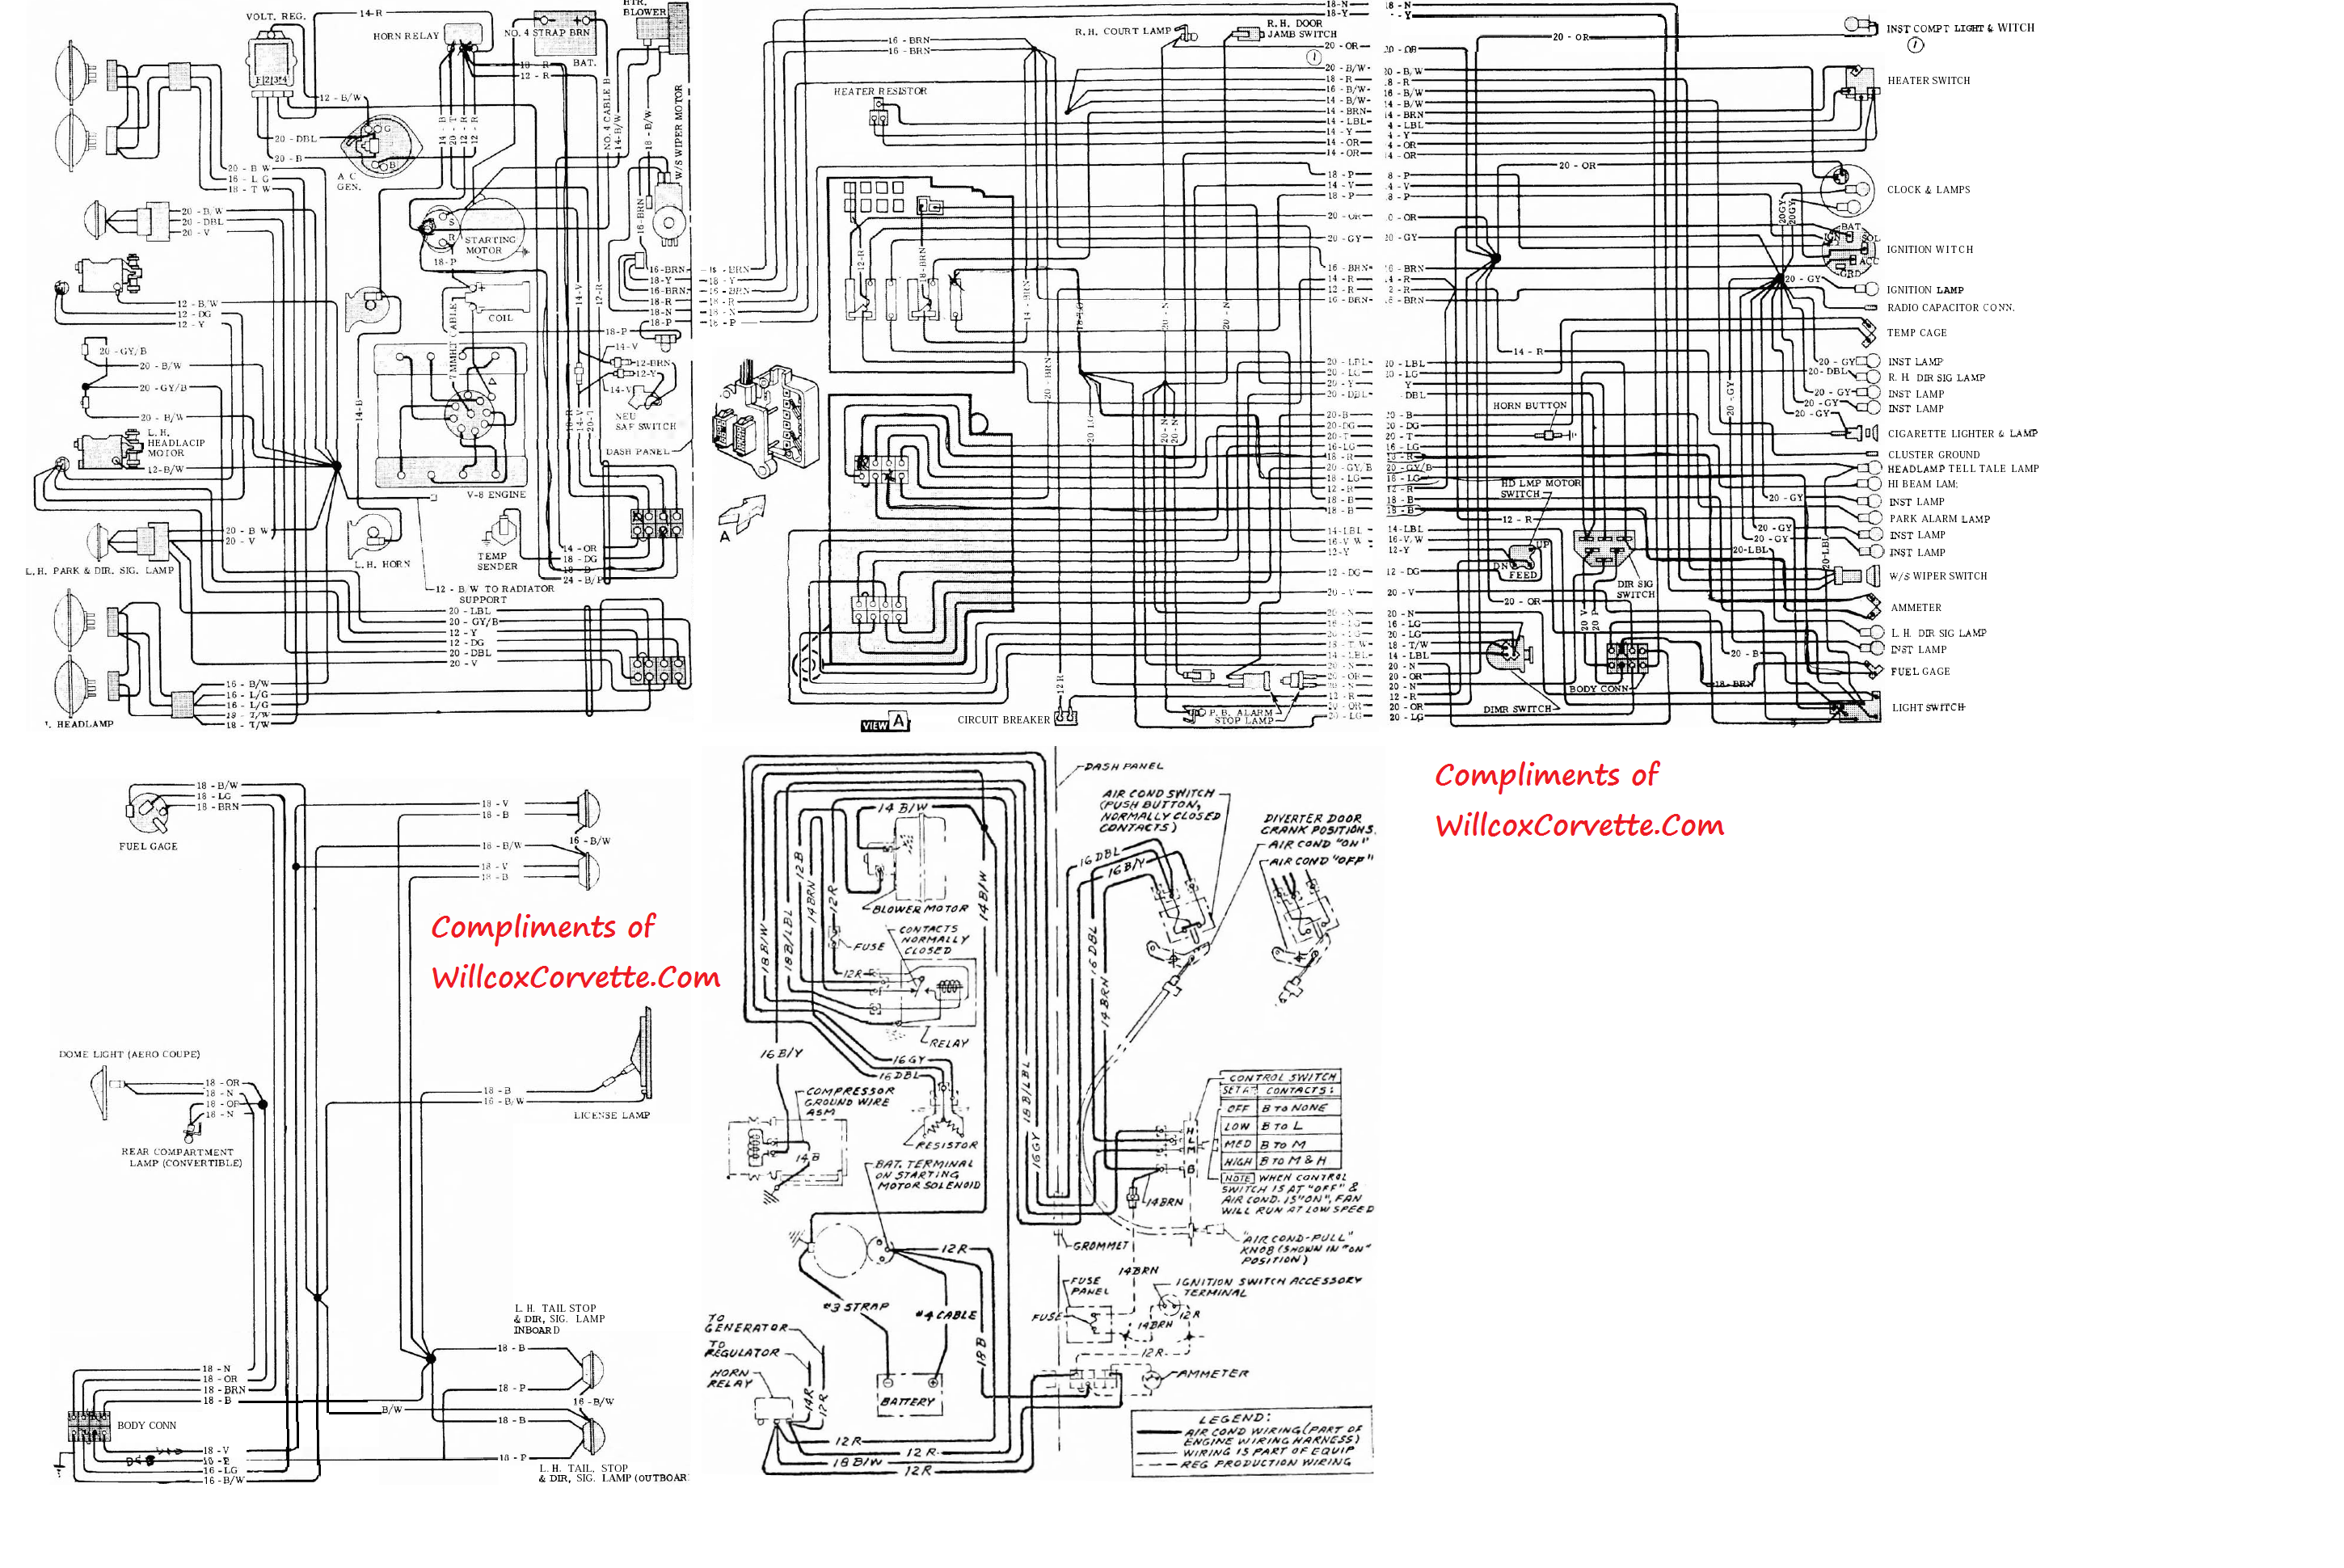 1989 Ez Go Golf Cart Wiring Diagram from repairs.willcoxcorvette.com